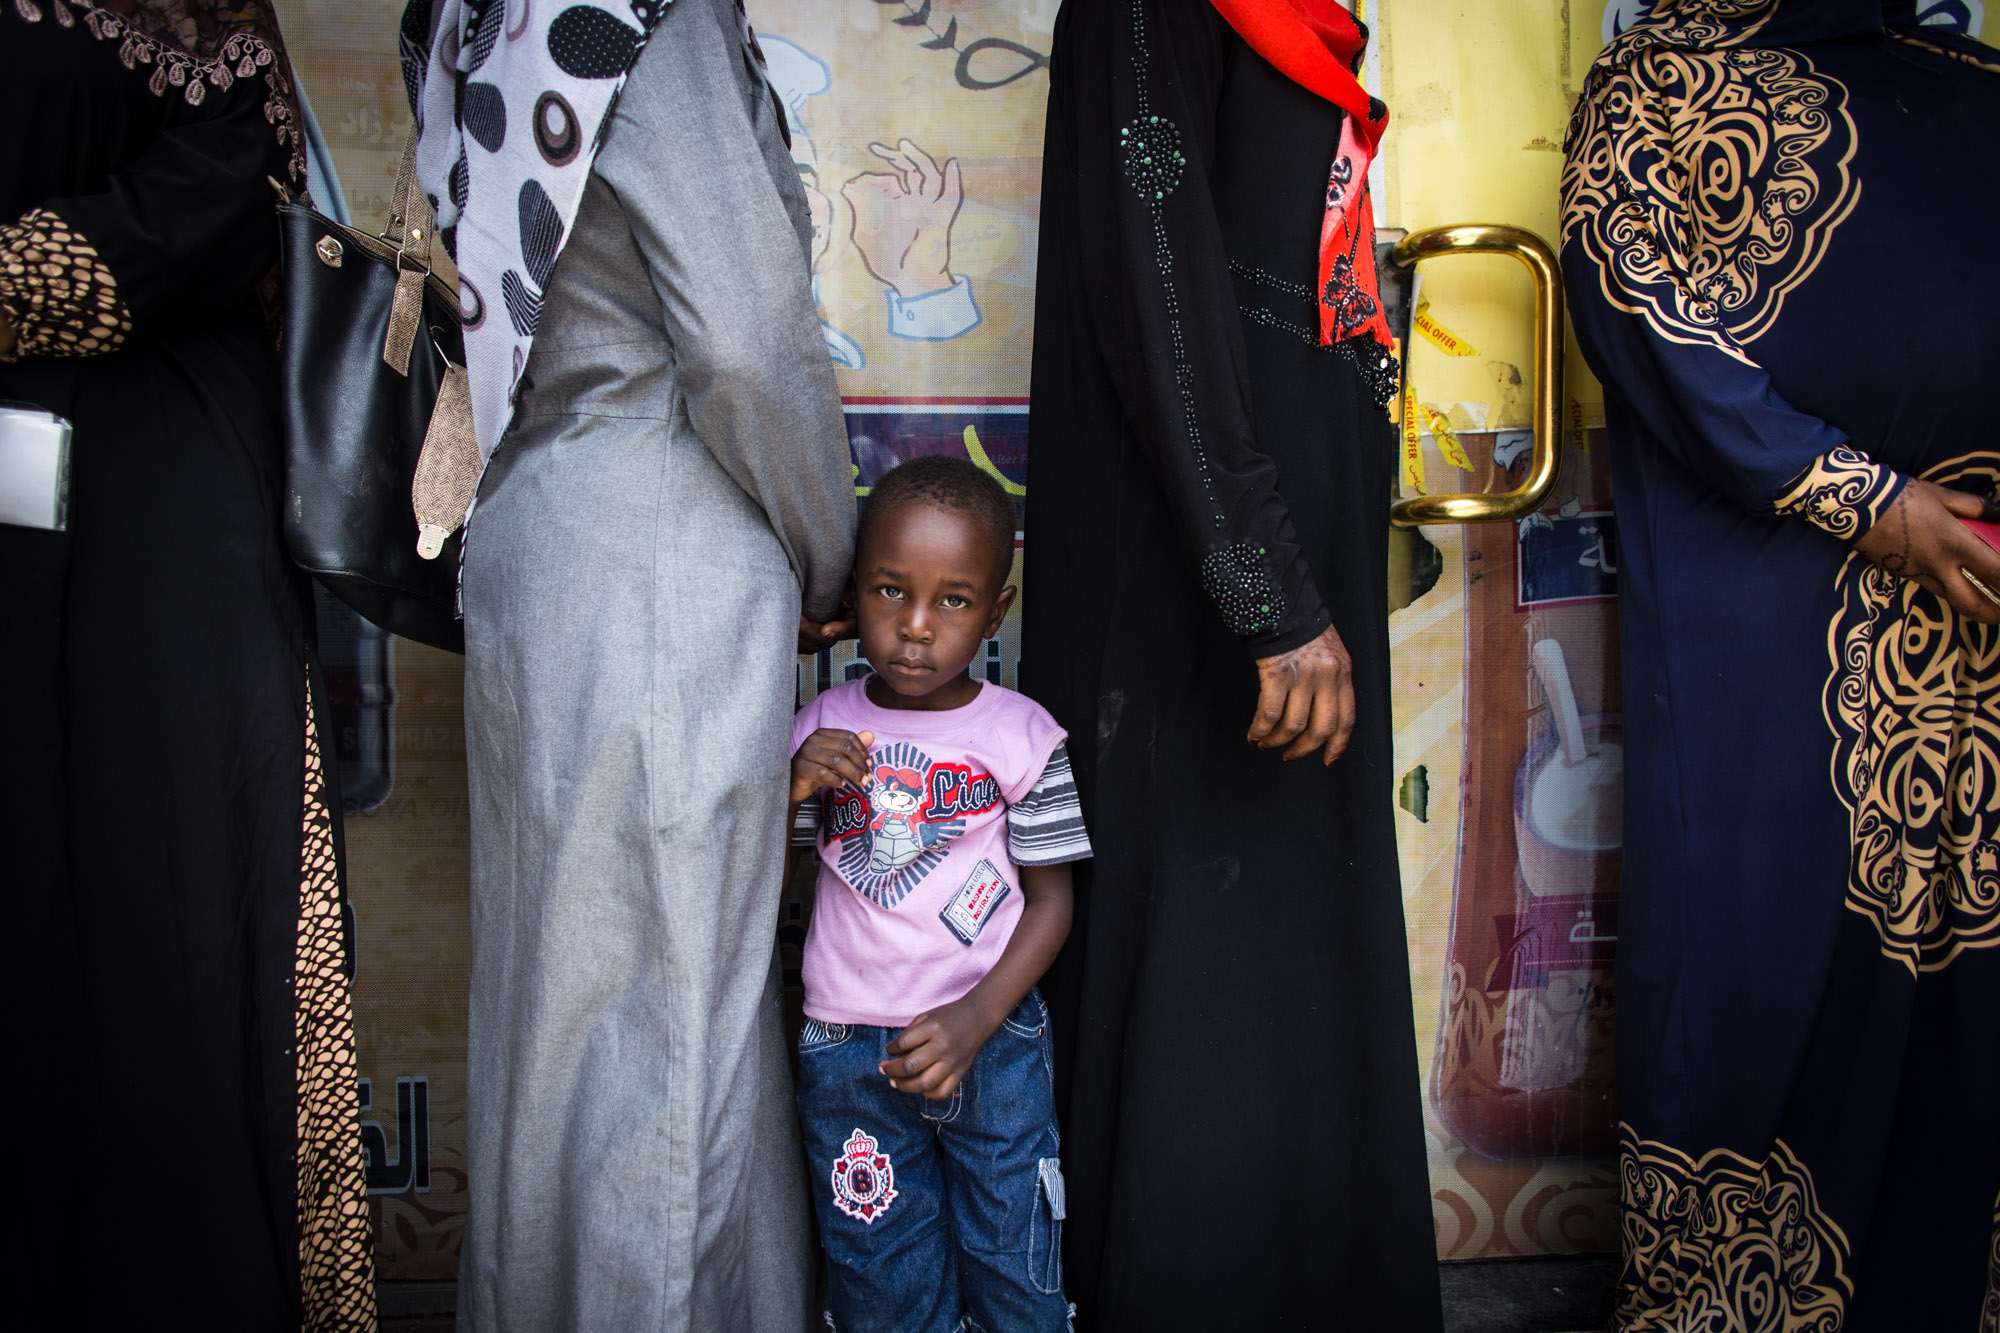 A young Sudanese boy stands in line with his mother and other women to buy food from a supermarket with a food voucher they receive from local NGO Collateral Repair Project in Amman, Jordan. Refugees living outside official camps - Sudanese refugees in particular - receive little aid and often feel neglected by the UN and international NGOs.